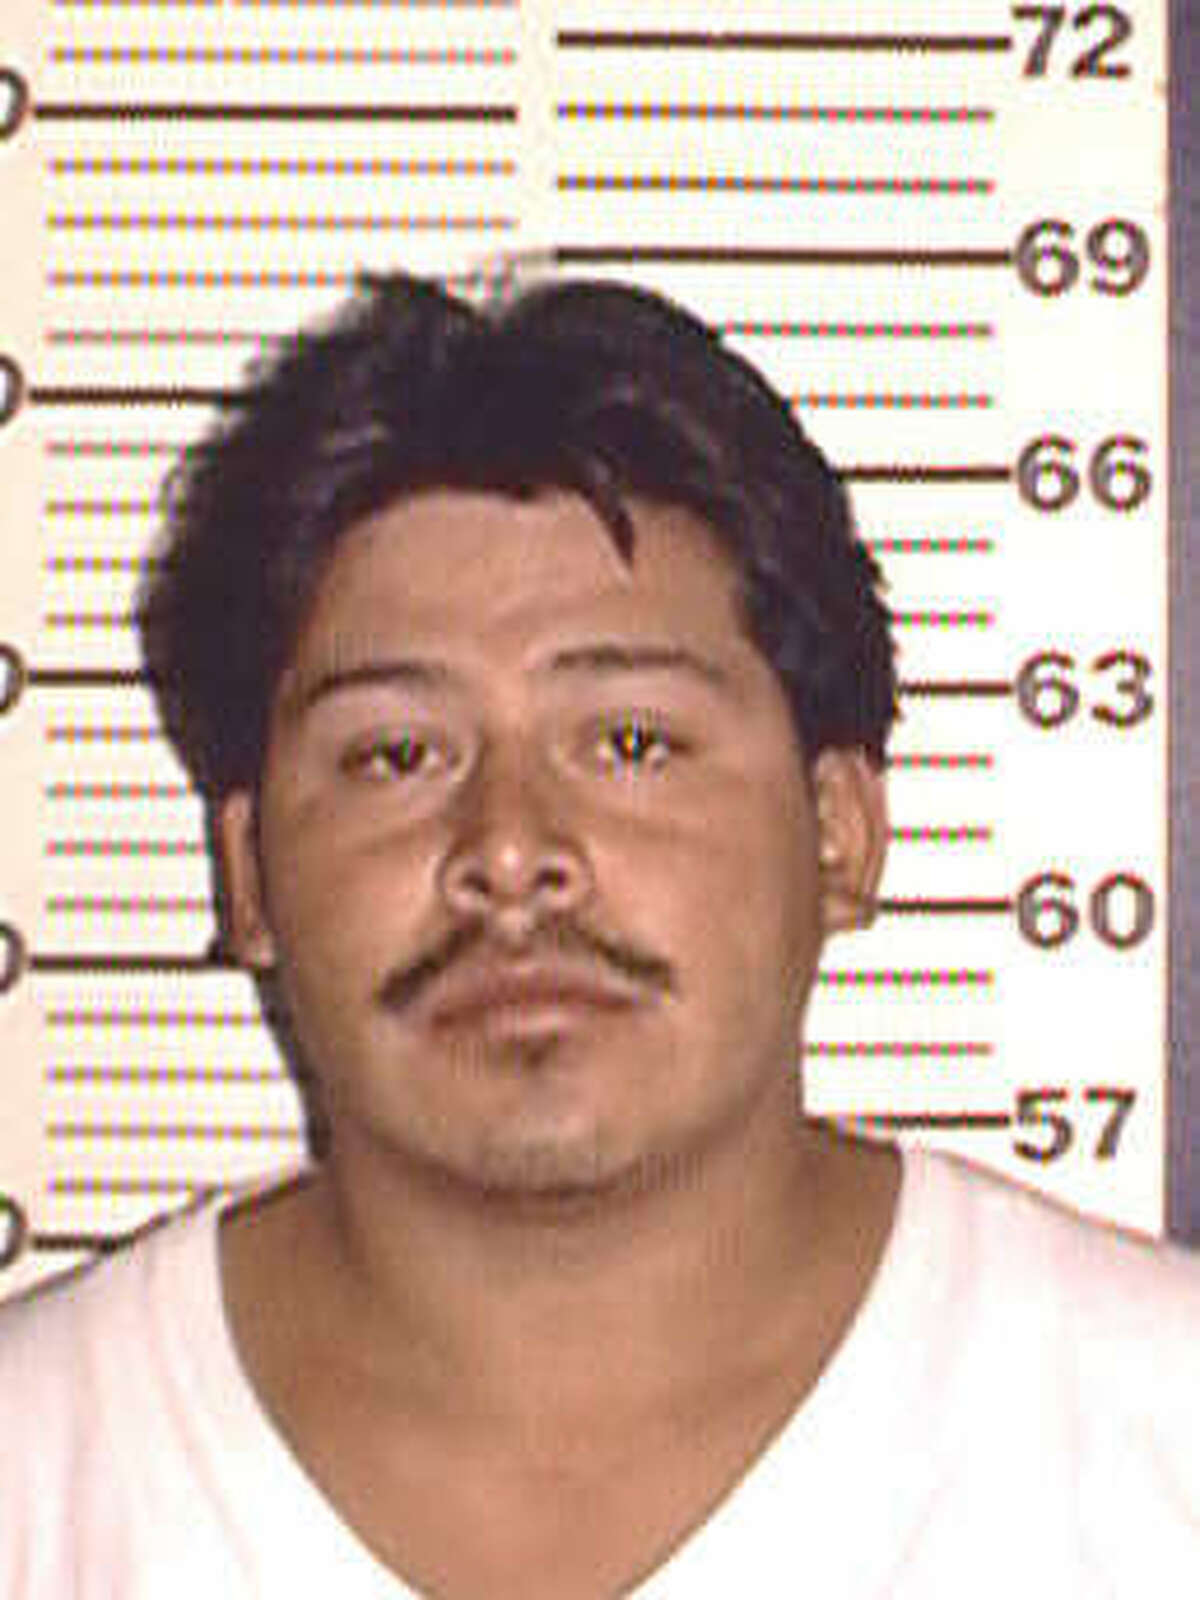 Bexar County mugshot from Dec. 30, 2002. Gregorio Santos, who's collected nine DWI convictions in Bexar County, was sentenced today to 25 years in prison Sept. 25, 2014.